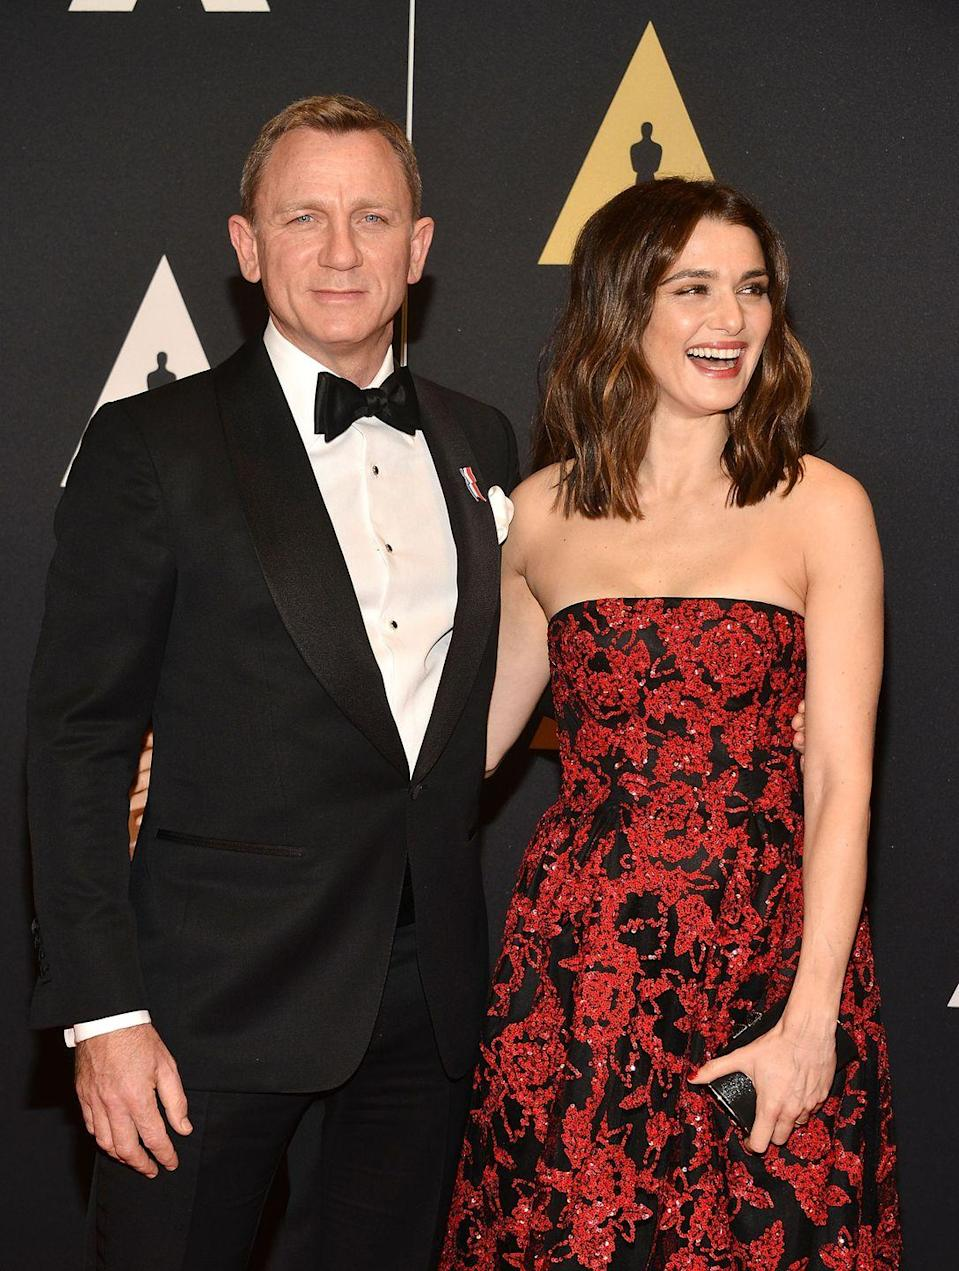 """<p>Since the start of their relationship, Daniel Craig and Rachel Weisz have kept their life together private. But a year later, they confirmed that they got married in a small New York ceremony with only four guests. """"We did it privately and we've got a lot of people to thank for that,"""" Daniel told <a href=""""https://www.gq-magazine.co.uk/article/daniel-craig-interview"""" rel=""""nofollow noopener"""" target=""""_blank"""" data-ylk=""""slk:GQ"""" class=""""link rapid-noclick-resp""""><em>GQ</em></a>.</p>"""